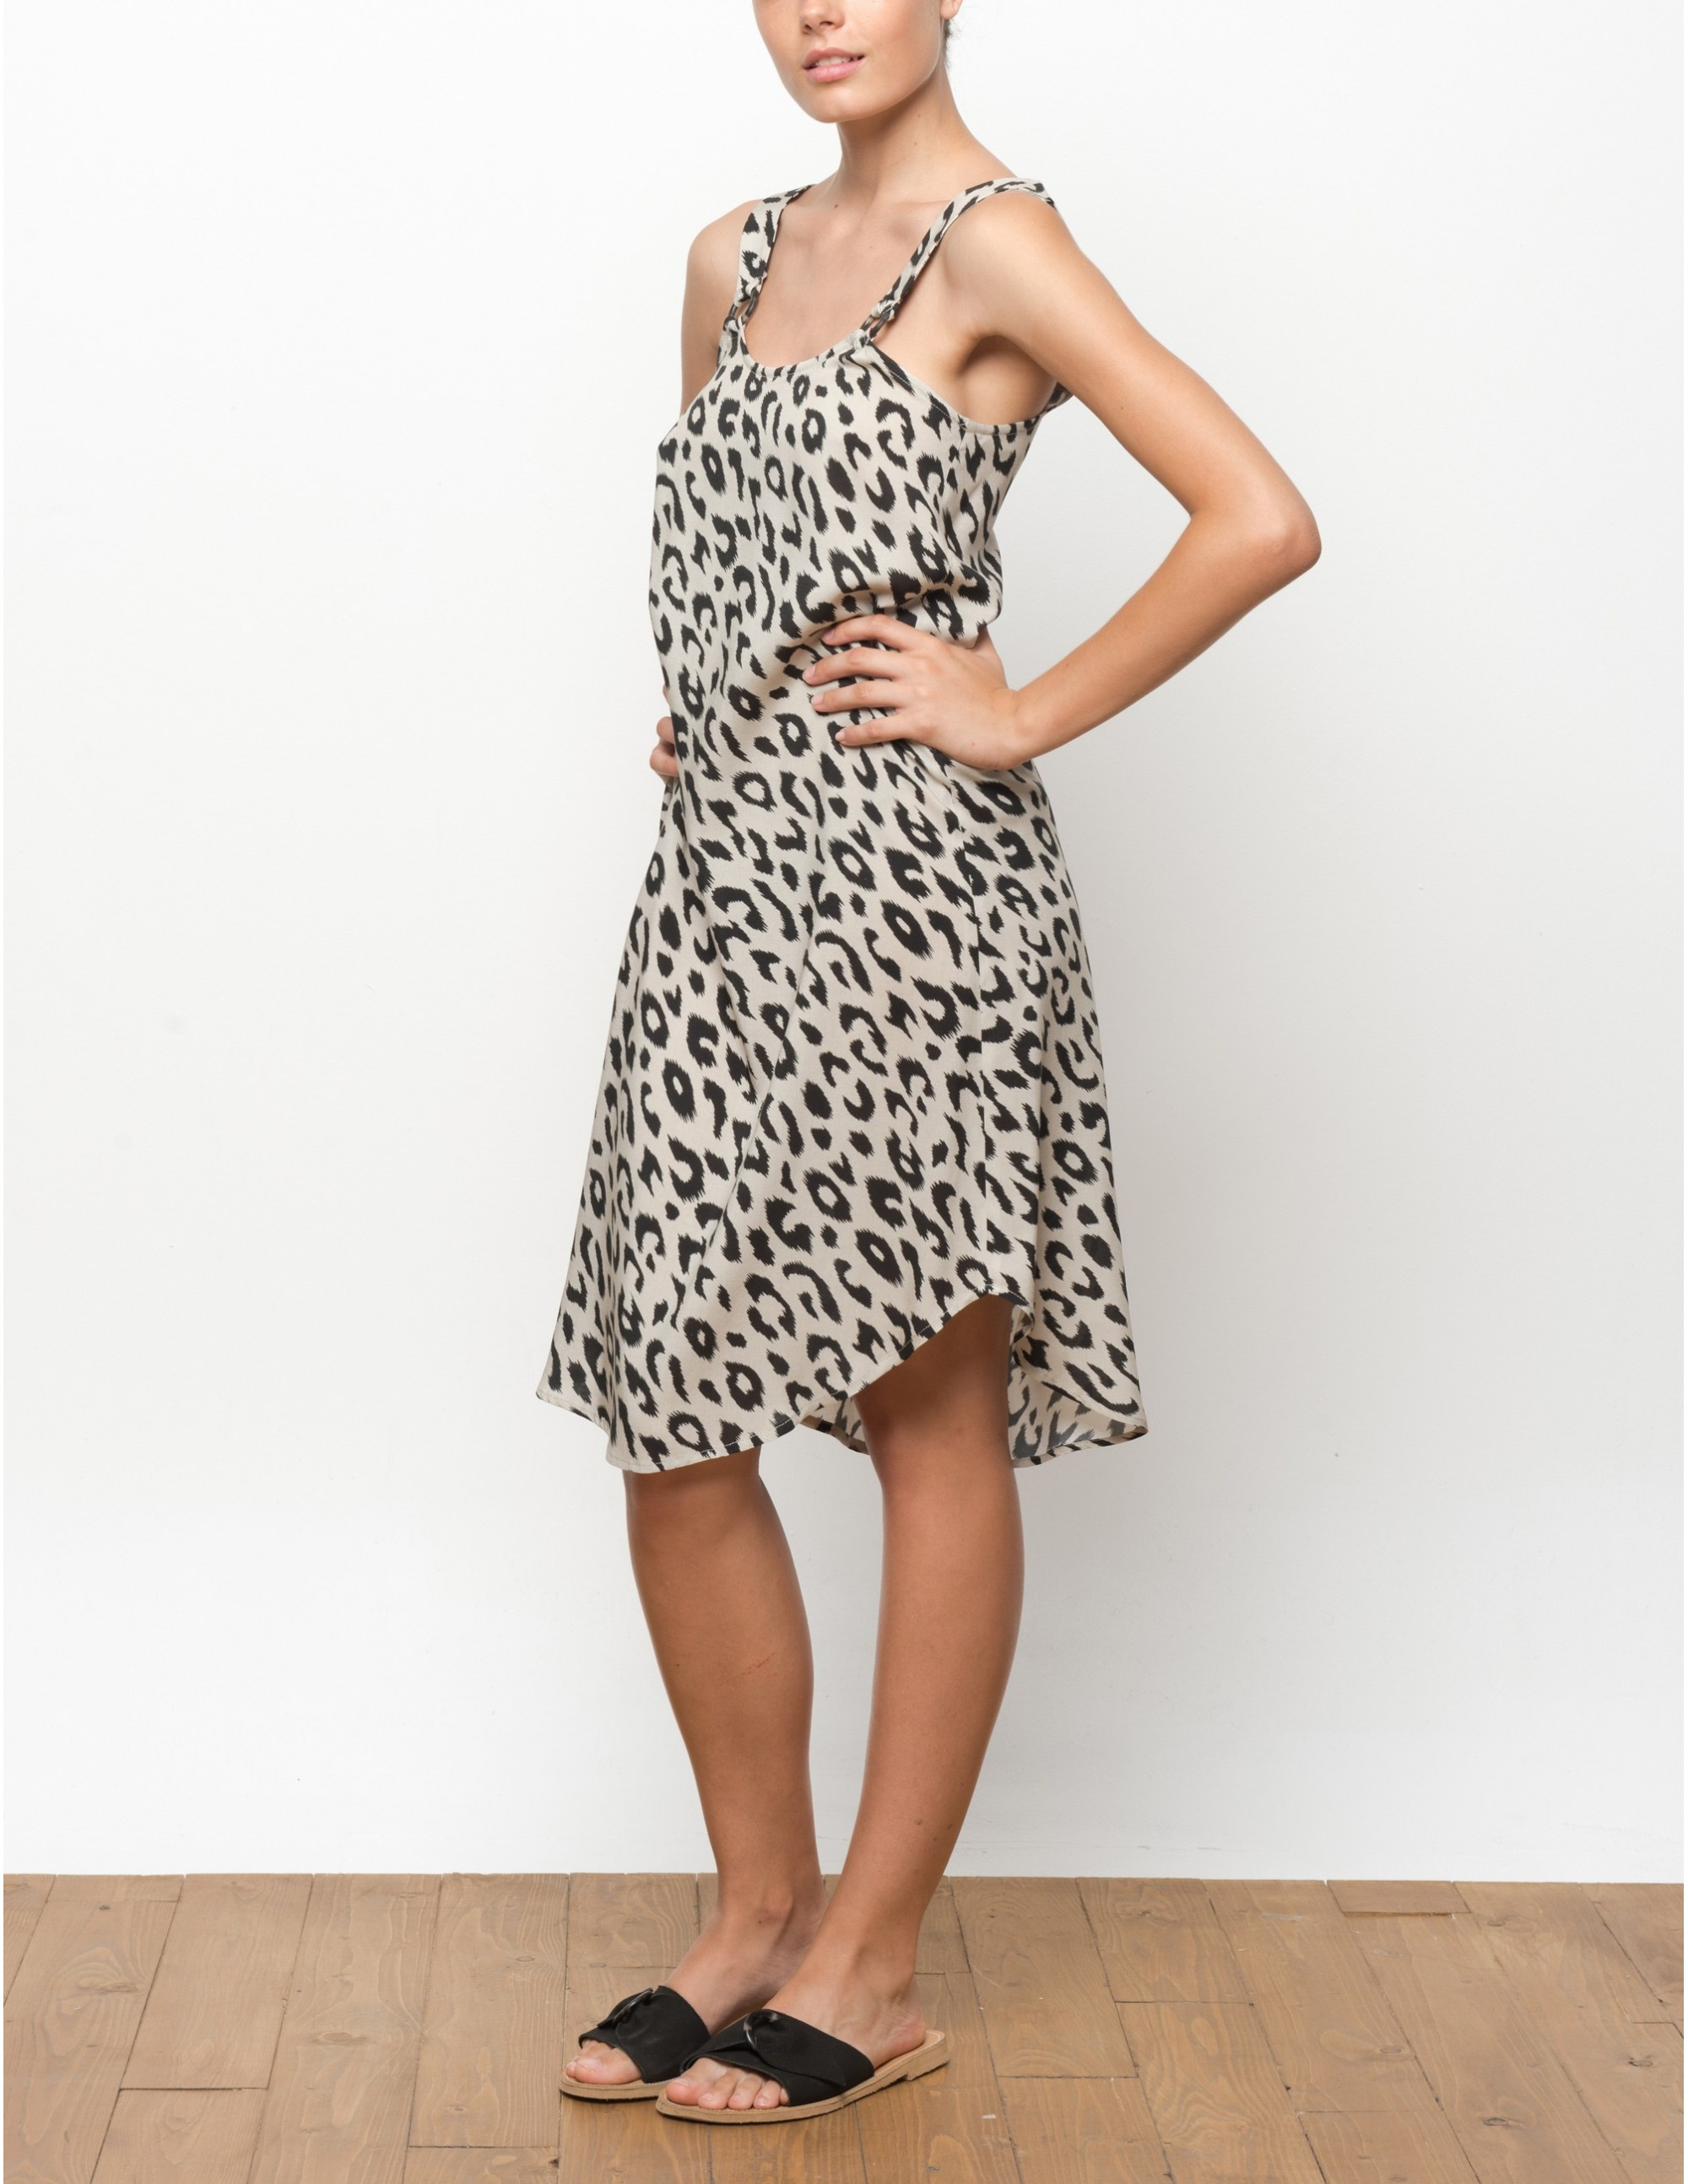 VUMA dress - LEOPARD